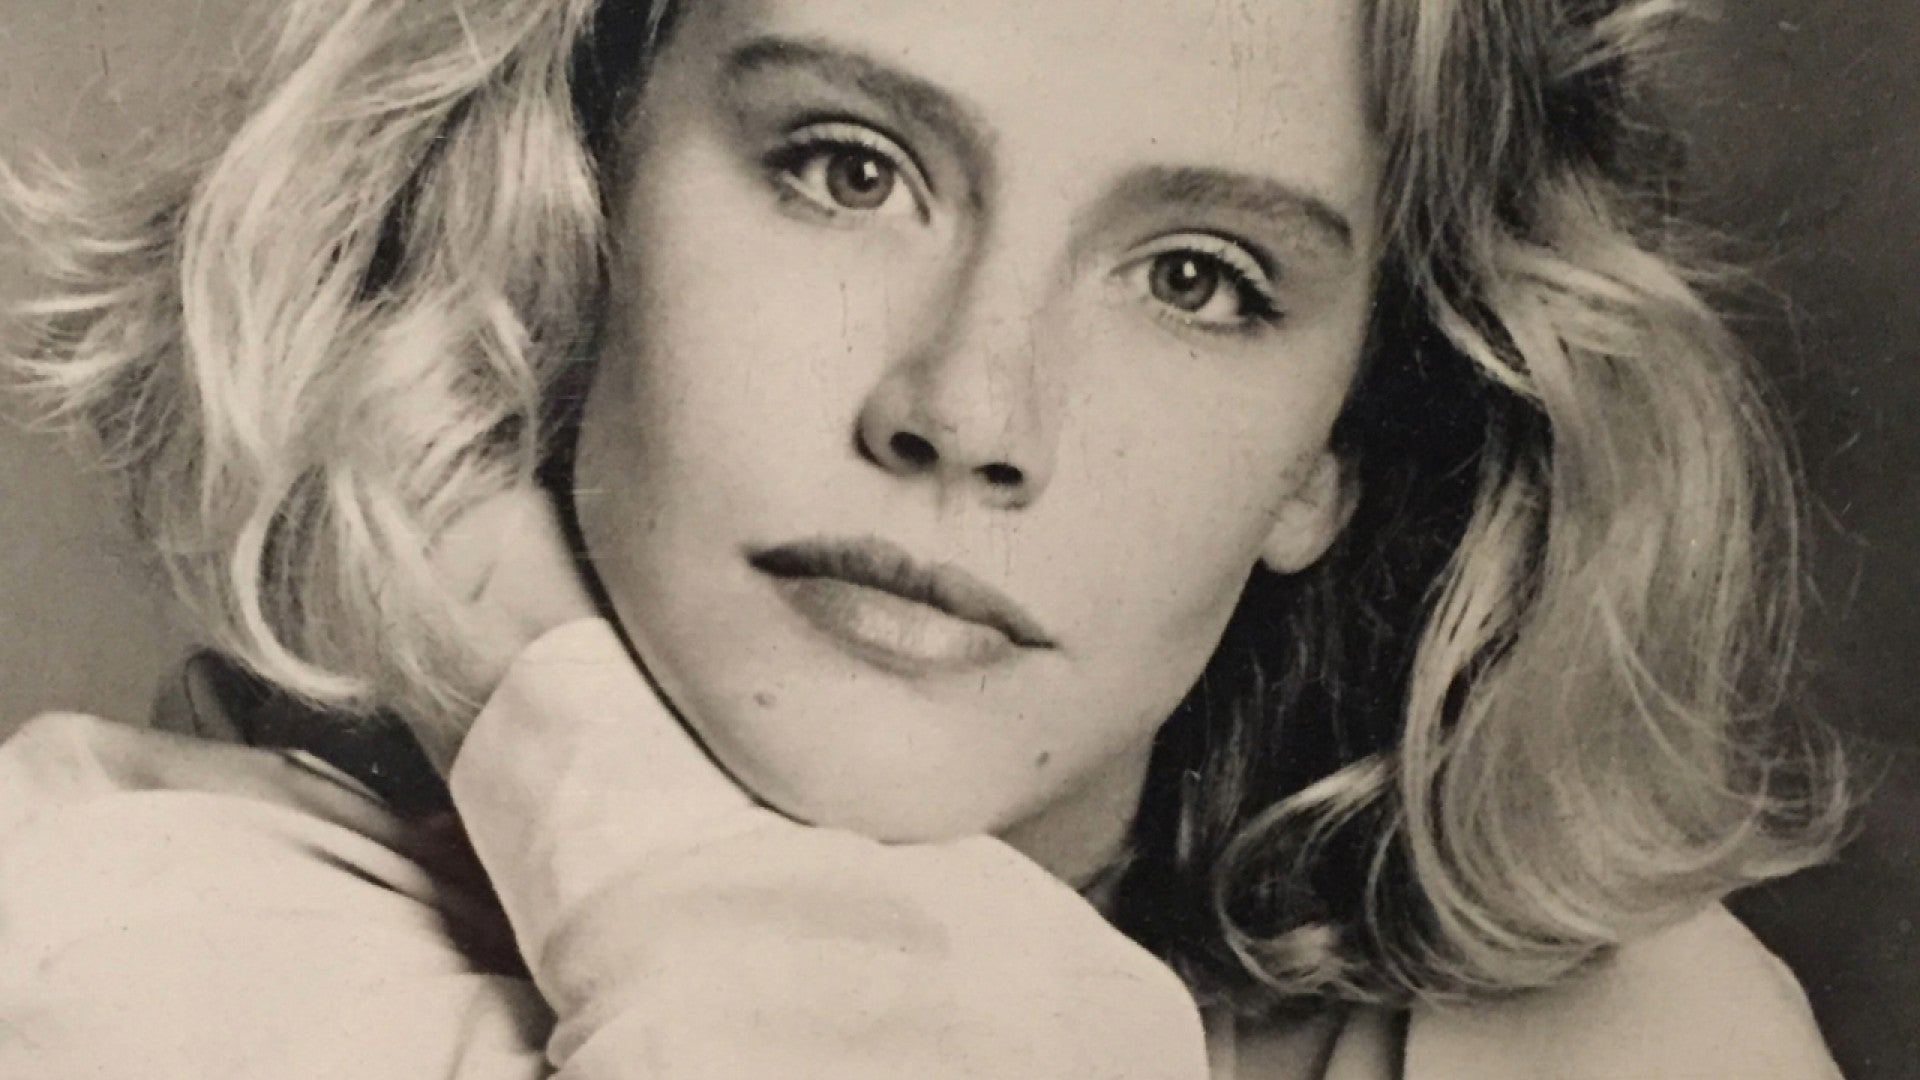 Amanda Peterson Photos amanda peterson's mom remembers their last day together: she